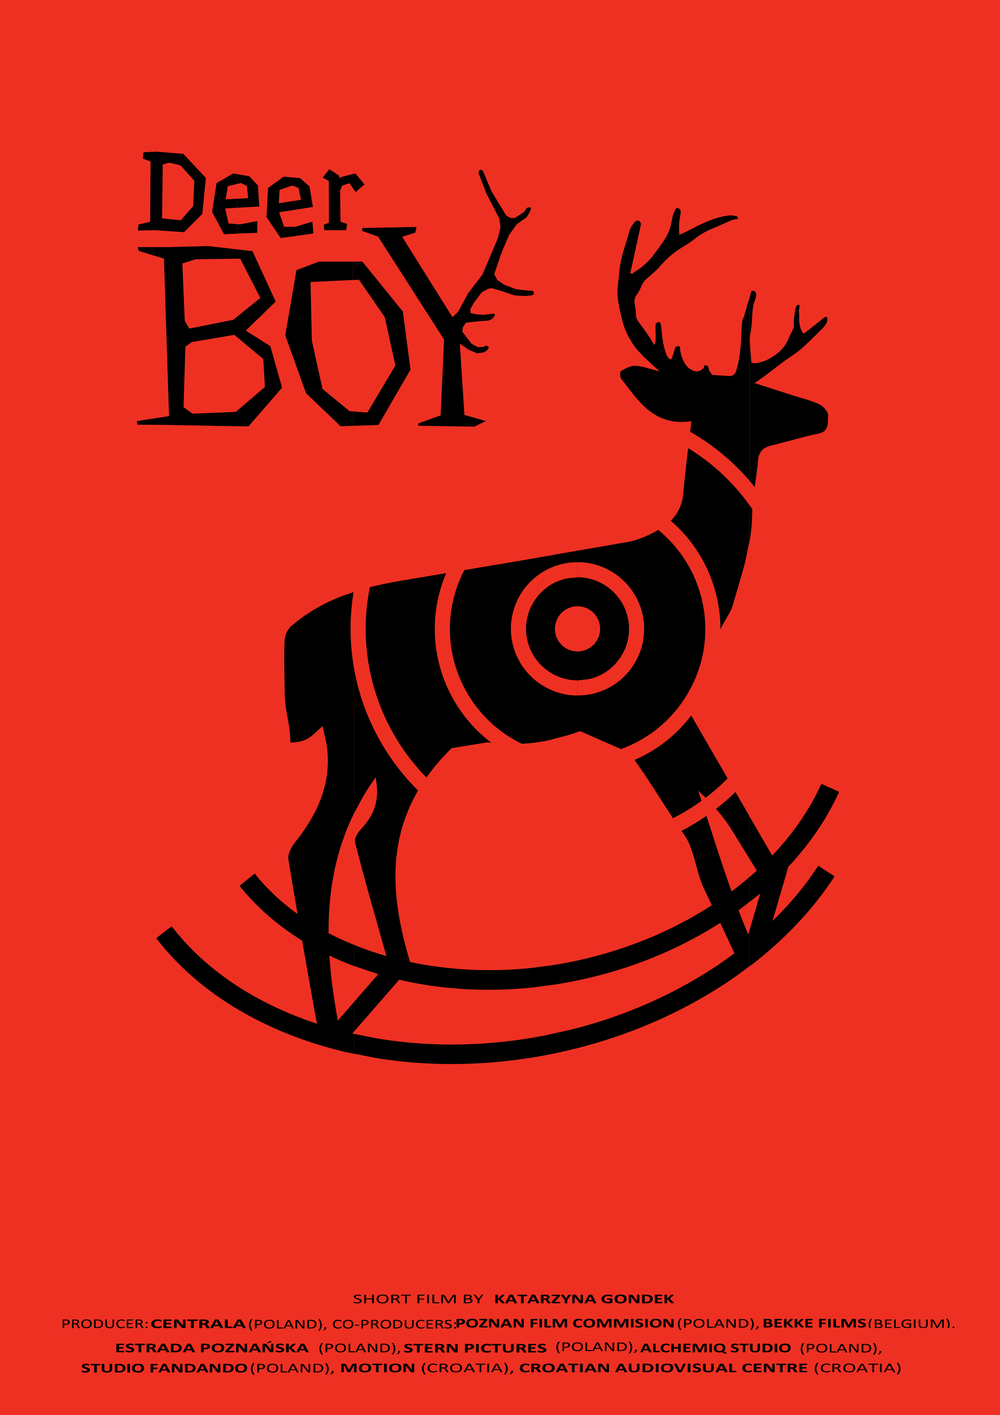 DEER_BOY.png